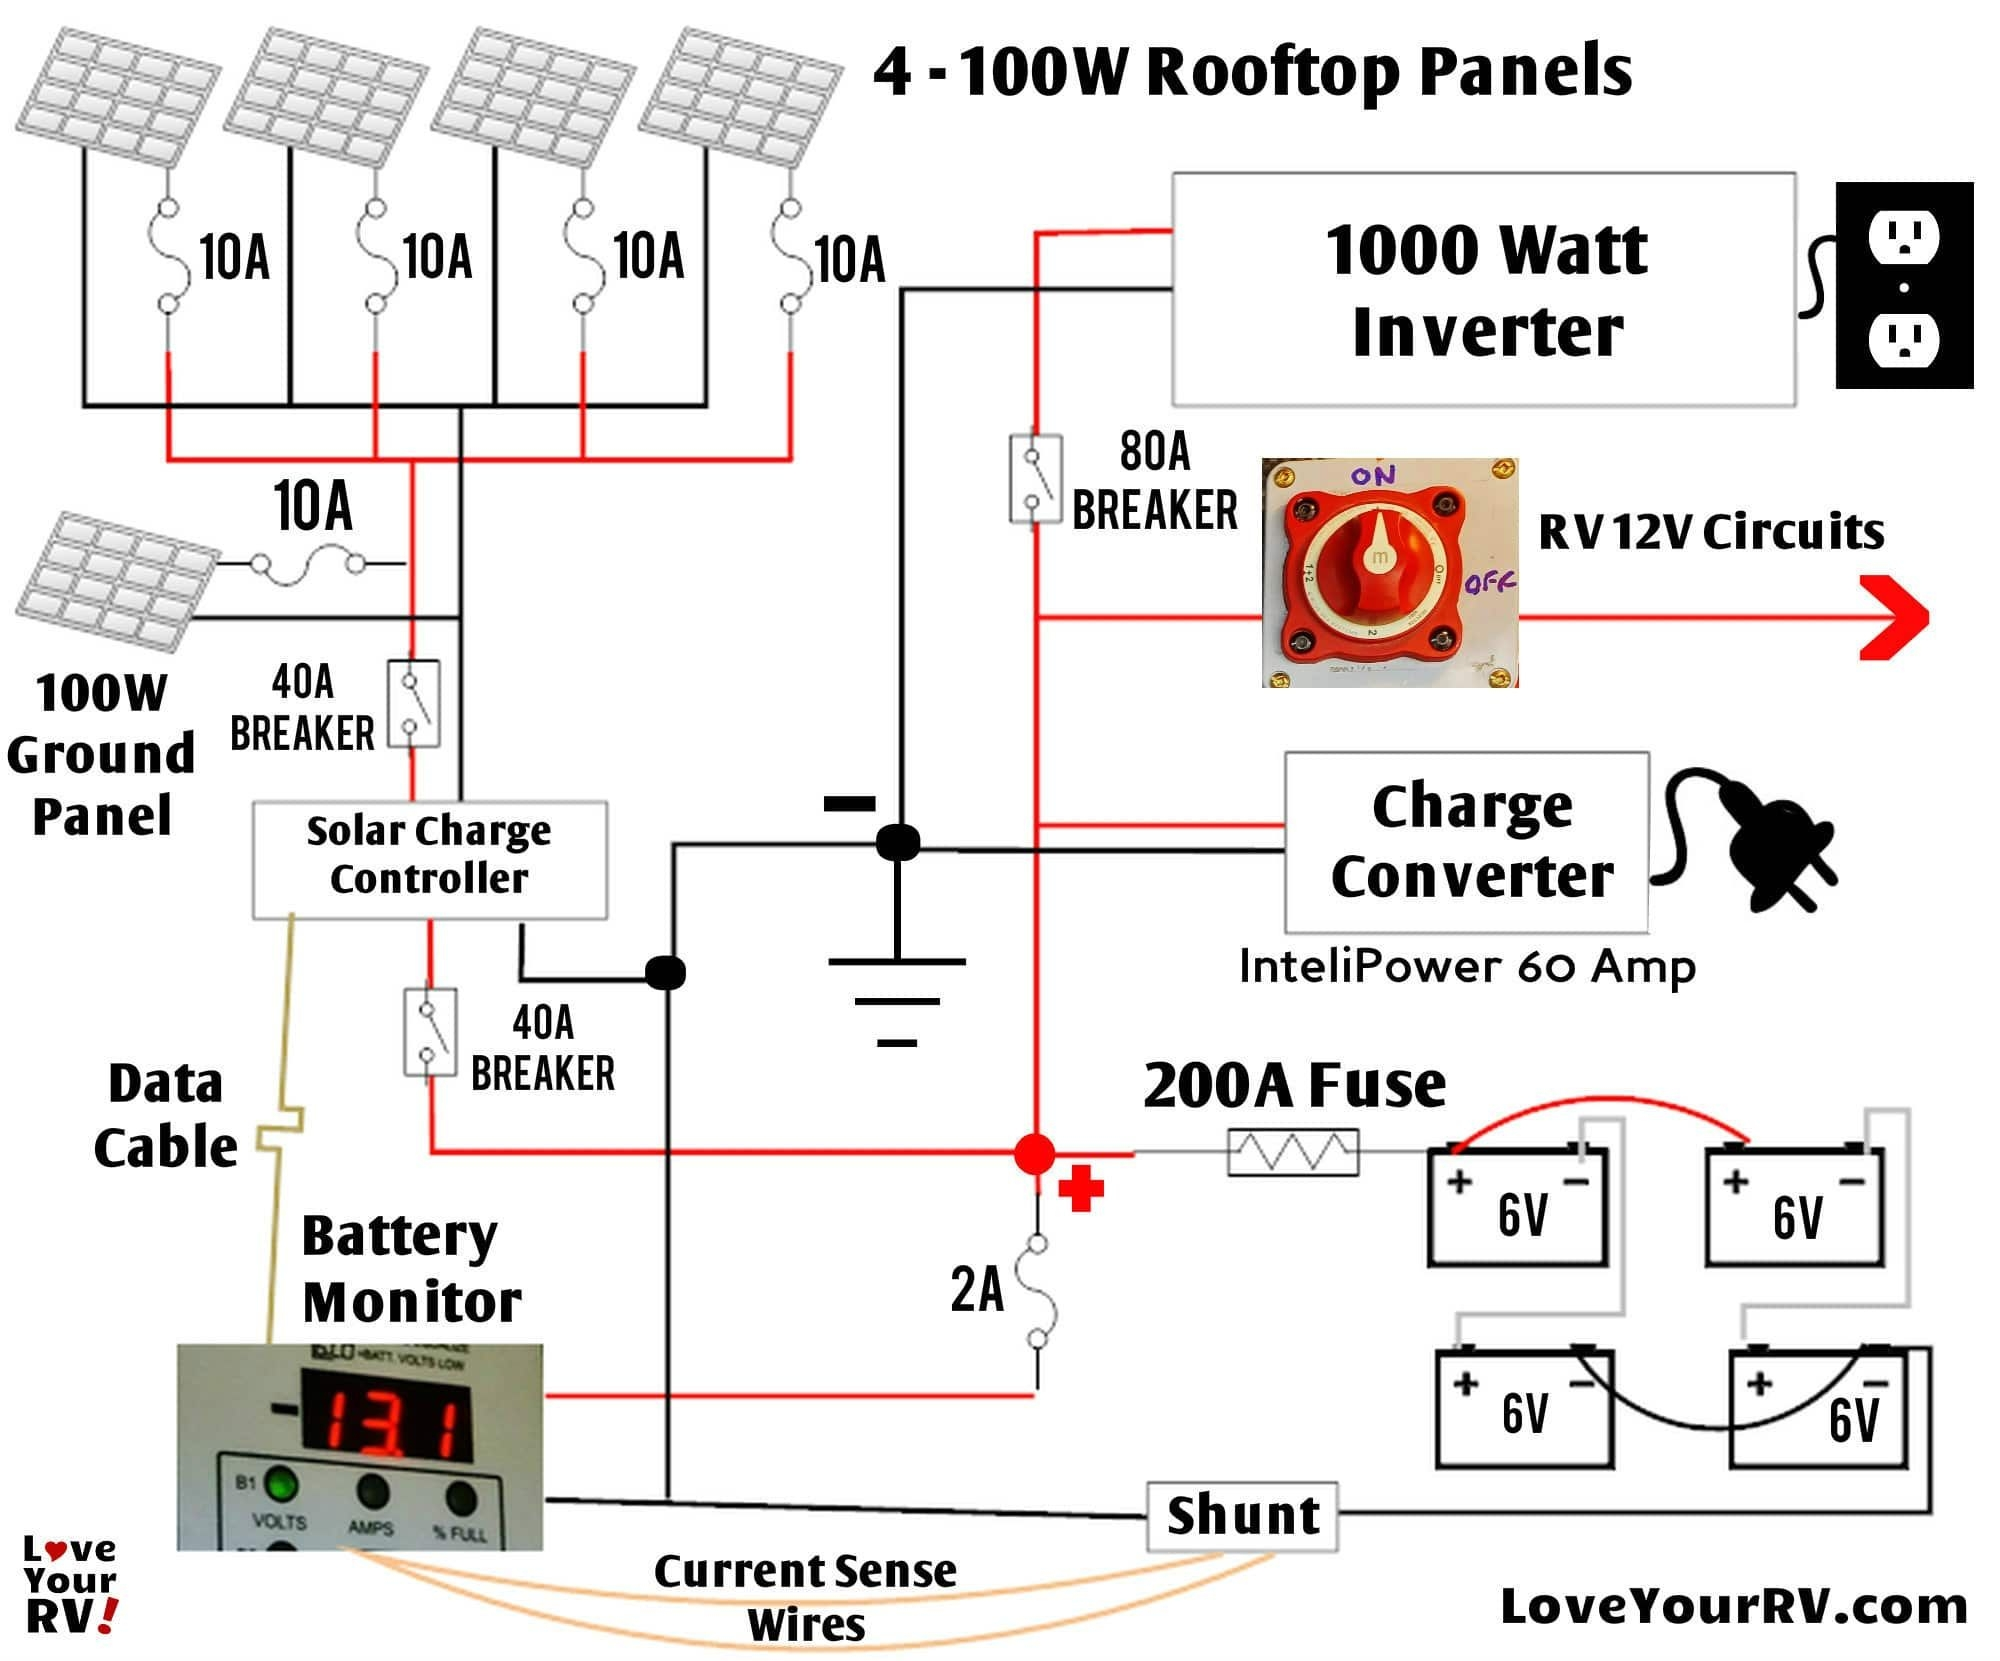 Grid Tie Battery Backup Wiring Diagram | Free Wiring Diagram Off Grid Wiring Diagrams on